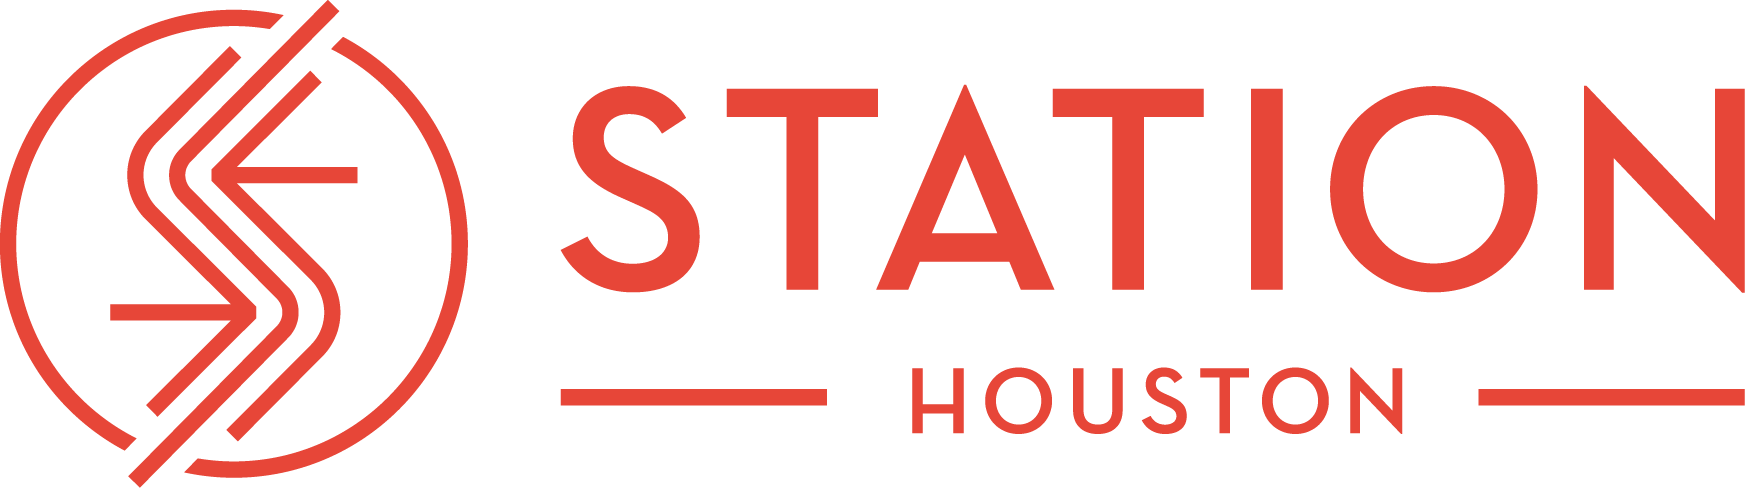 Station Houston Logo.png